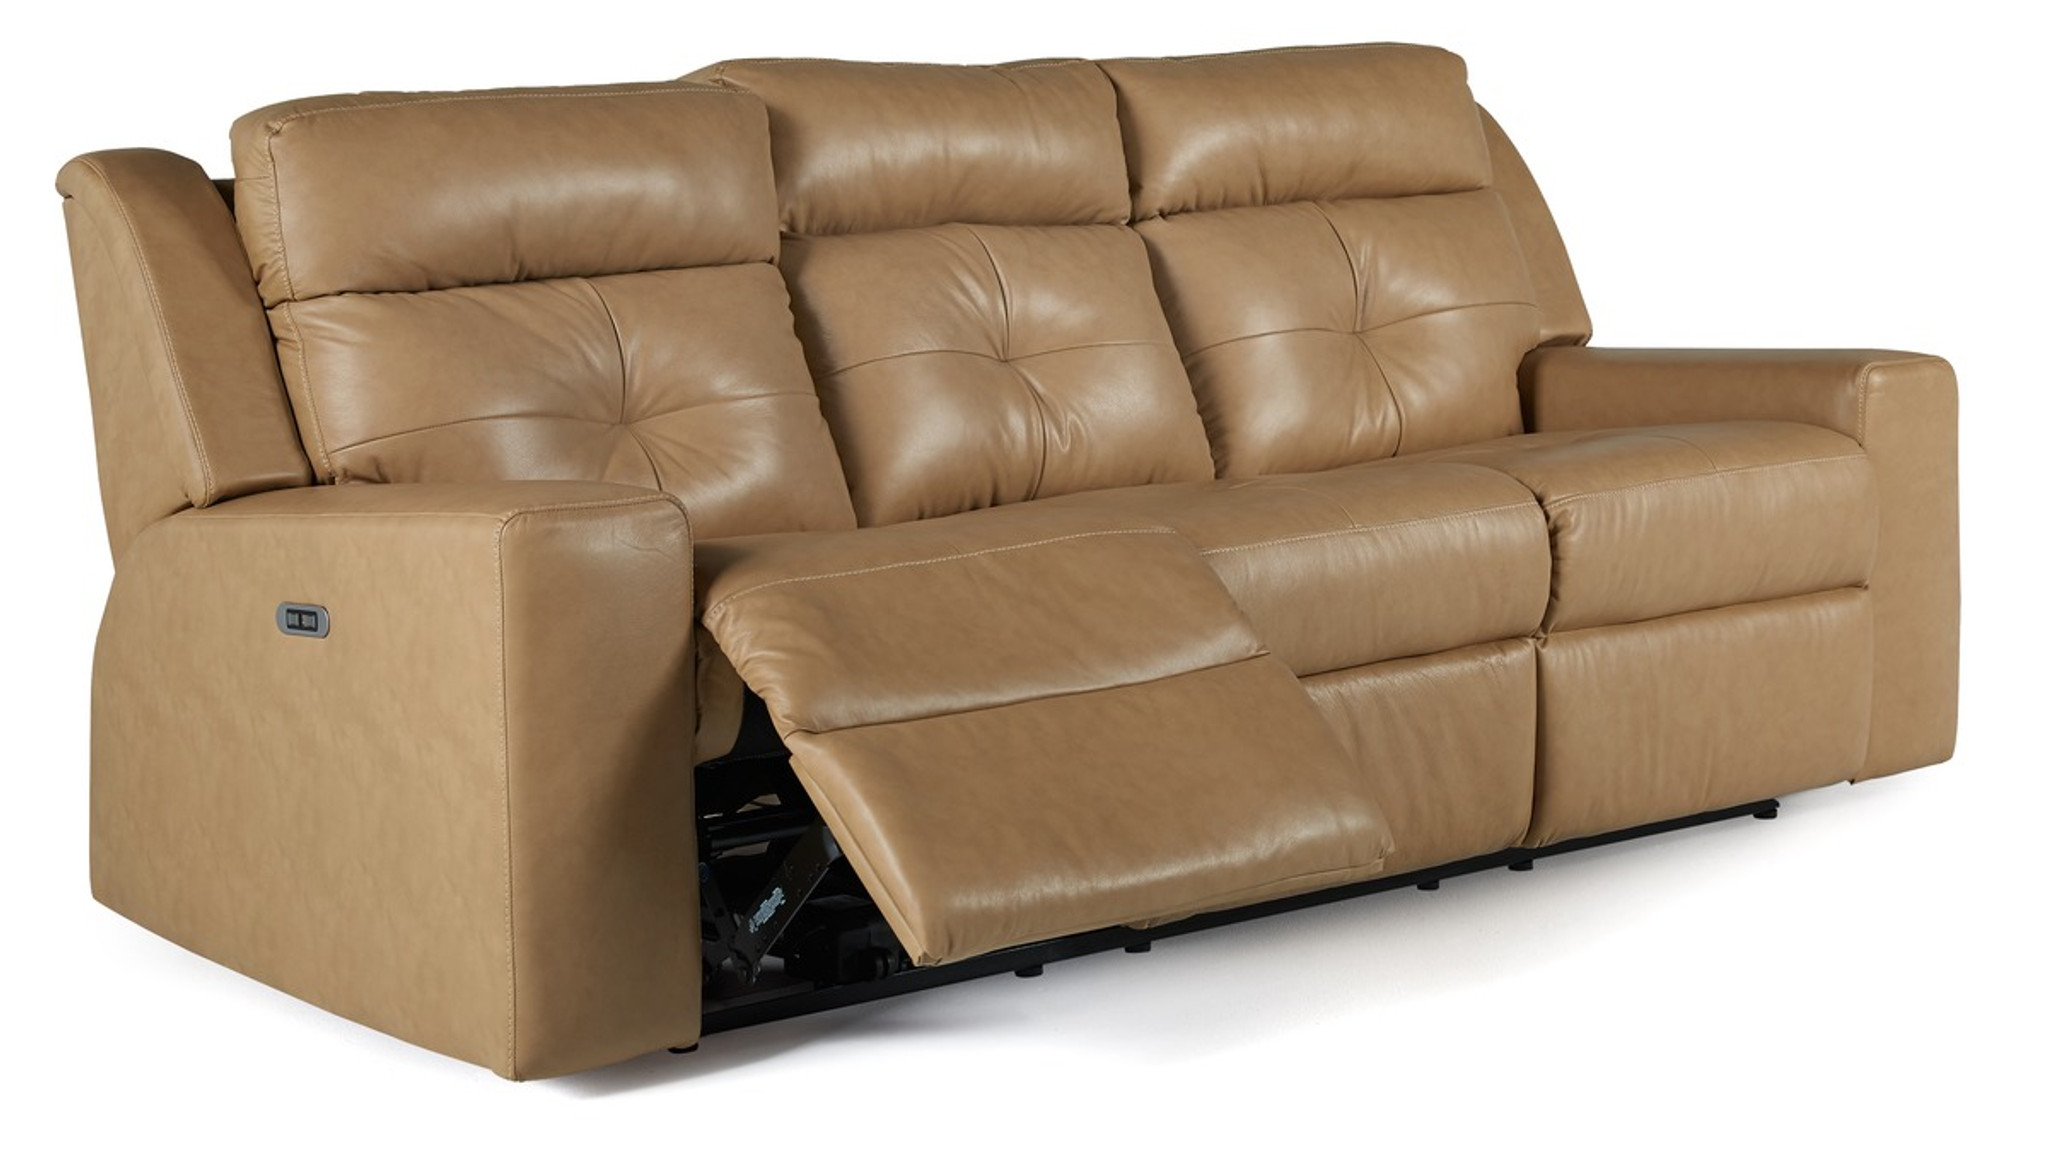 Charmant Palliser 41062 Grove Pwer Head/Seat Recliner Sofa ...